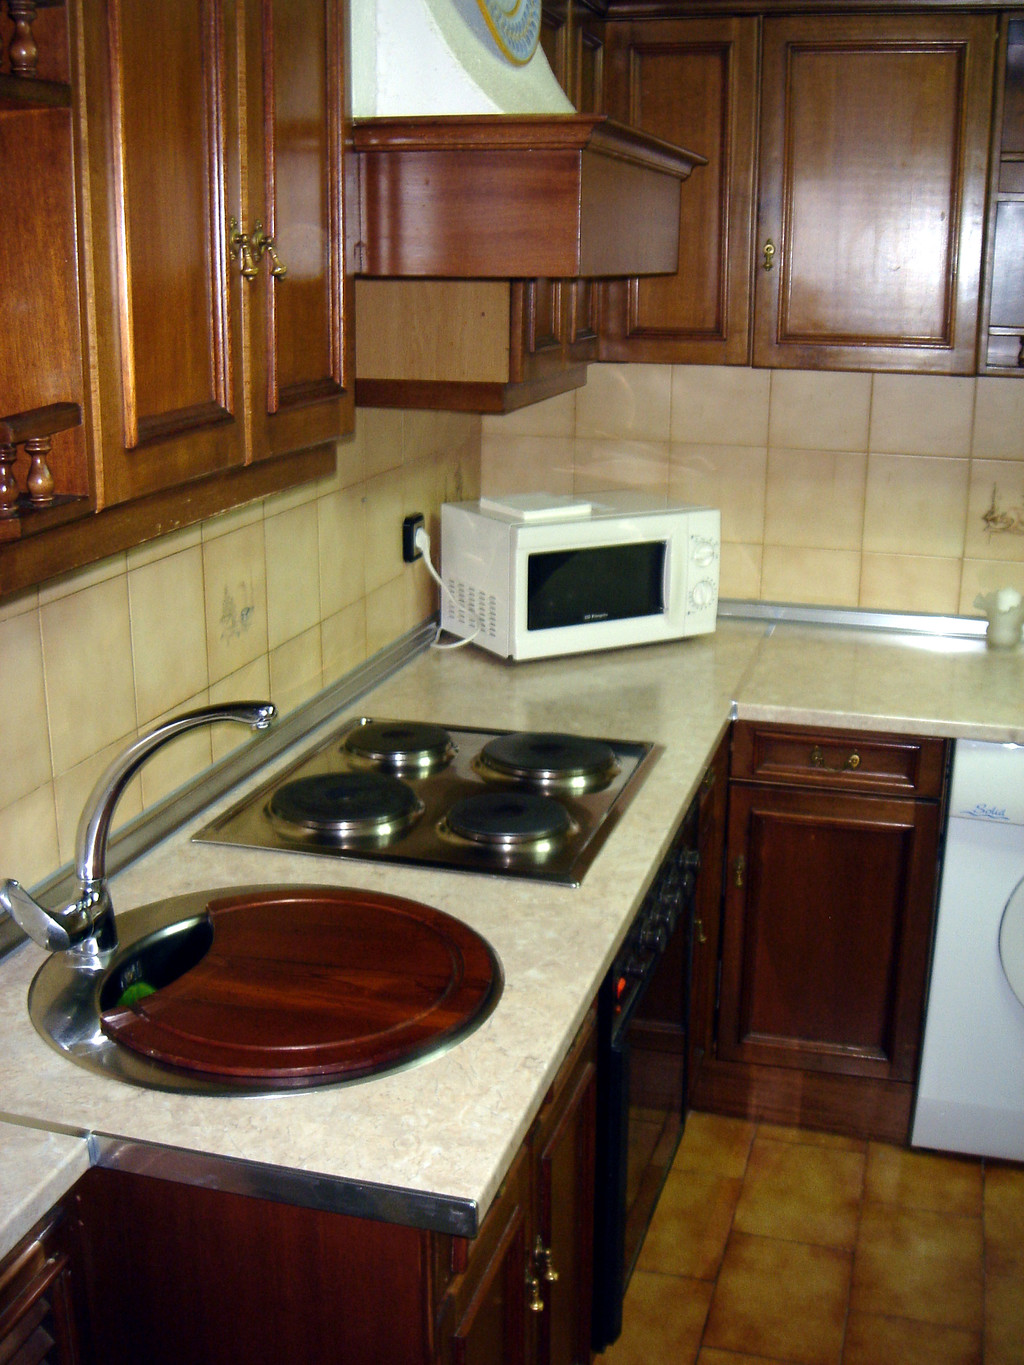 ROOM WITH EN SUITE BATHROOM TO RENT FOR A GIRL IN THE CITY CENTR. Room with private bathroom in the center of Salamanca  only girls